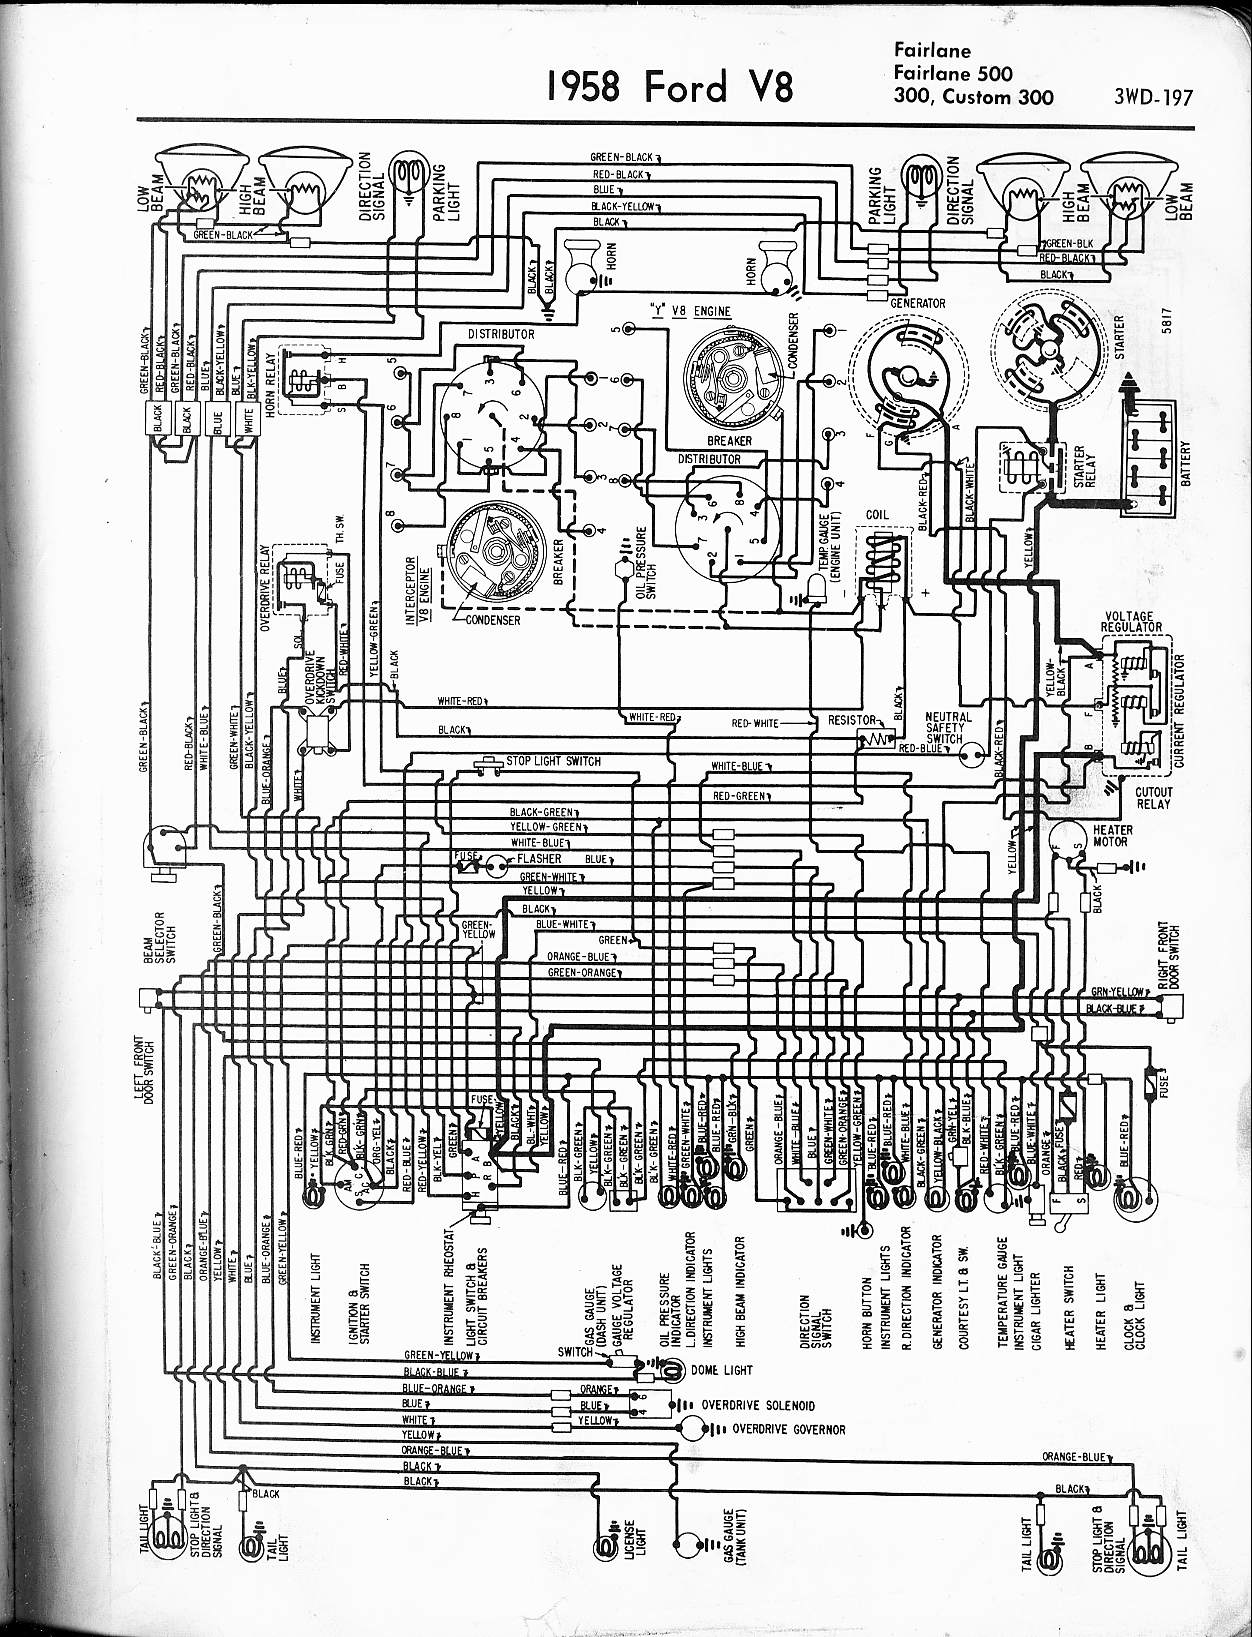 57-65 Ford Wiring Diagrams on 1957 plymouth wiring diagram, 1950 ford wiring diagram, 1930 ford wiring diagram, 1949 cadillac wiring diagram, 1926 ford wiring diagram, 1955 dodge wiring diagram, 1940 buick wiring diagram, 1955 buick wiring diagram, 1931 ford model a wiring diagram, 1964 mustang wiring diagram, 1957 pontiac wiring diagram, 1963 ford wiring diagram, 1950 cadillac wiring diagram, 1953 buick wiring diagram, 1967 ford wiring diagram, 1957 dodge wiring diagram, 59 ford wiring diagram, 1937 ford wiring diagram, 1958 ford continental kit, 1954 dodge wiring diagram,